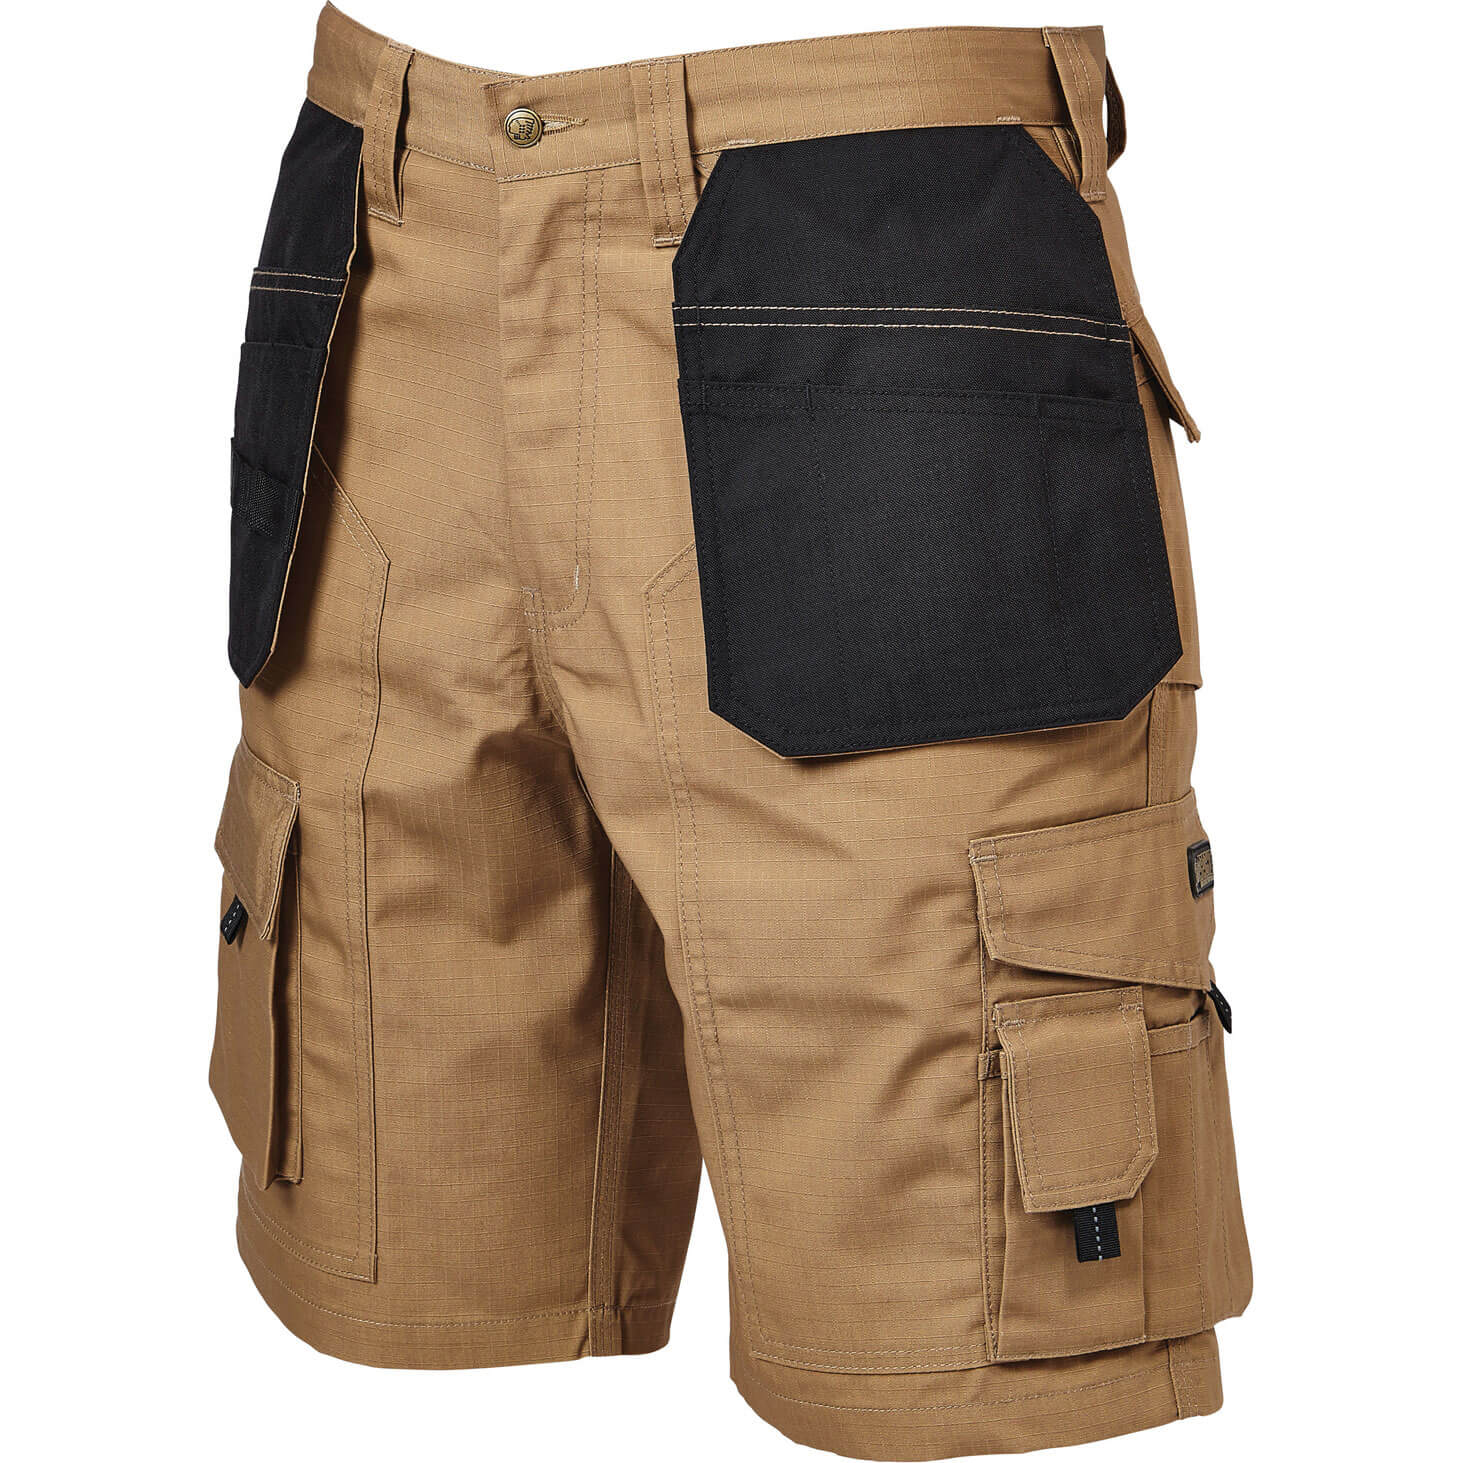 Image of Apache Rip Stop Holster Light Weight Work Shorts Stone 30""